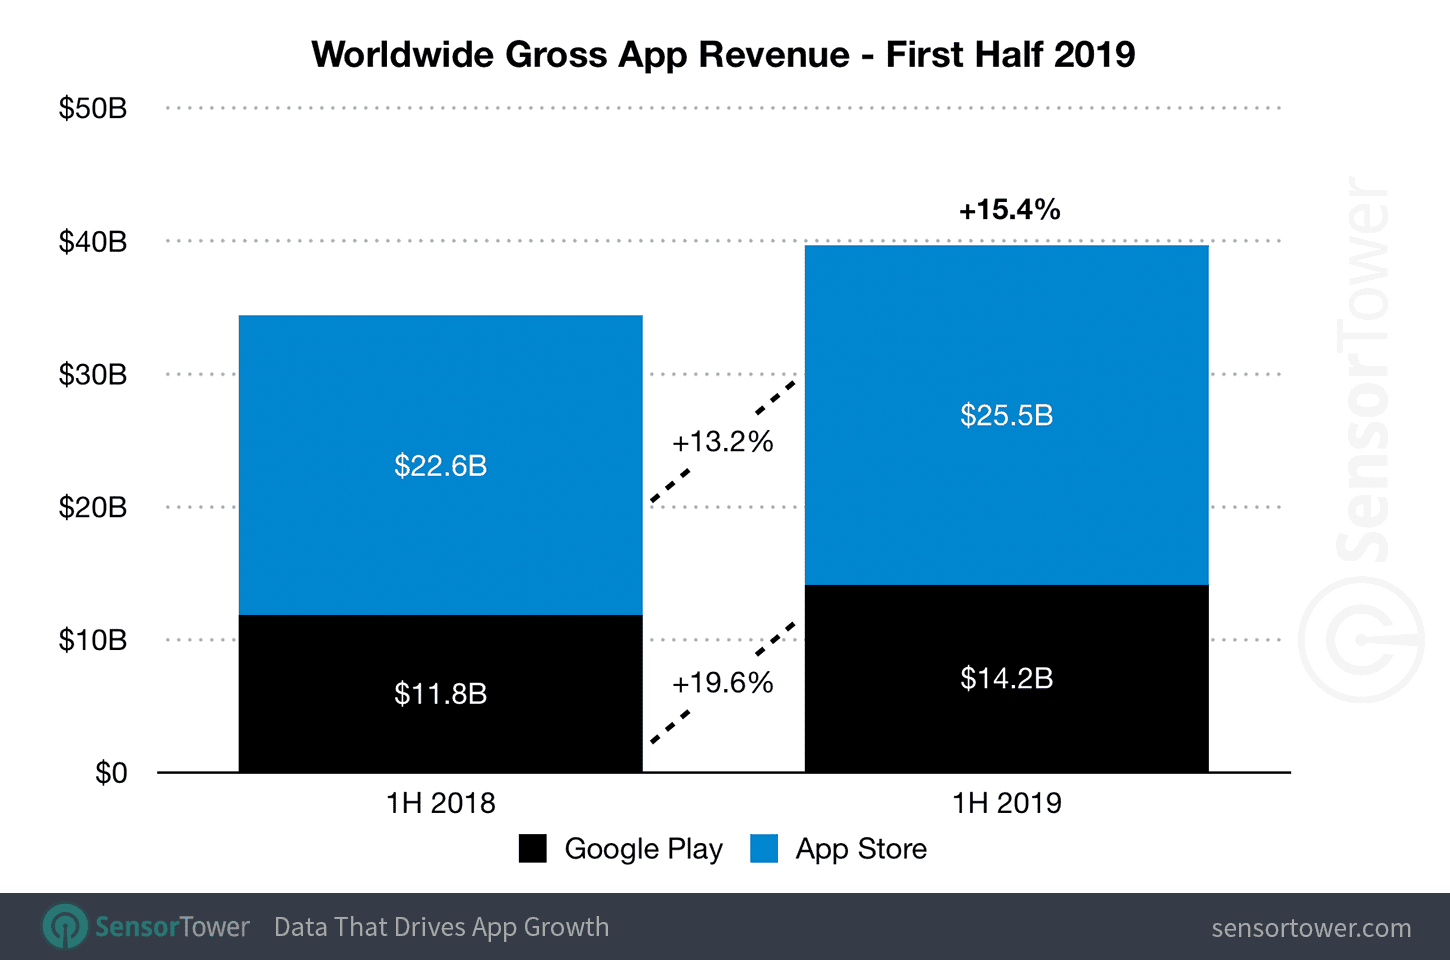 Global App Revenue Reached $39 Billion in the First Half of 2019, Up 15% Year-Over-Year